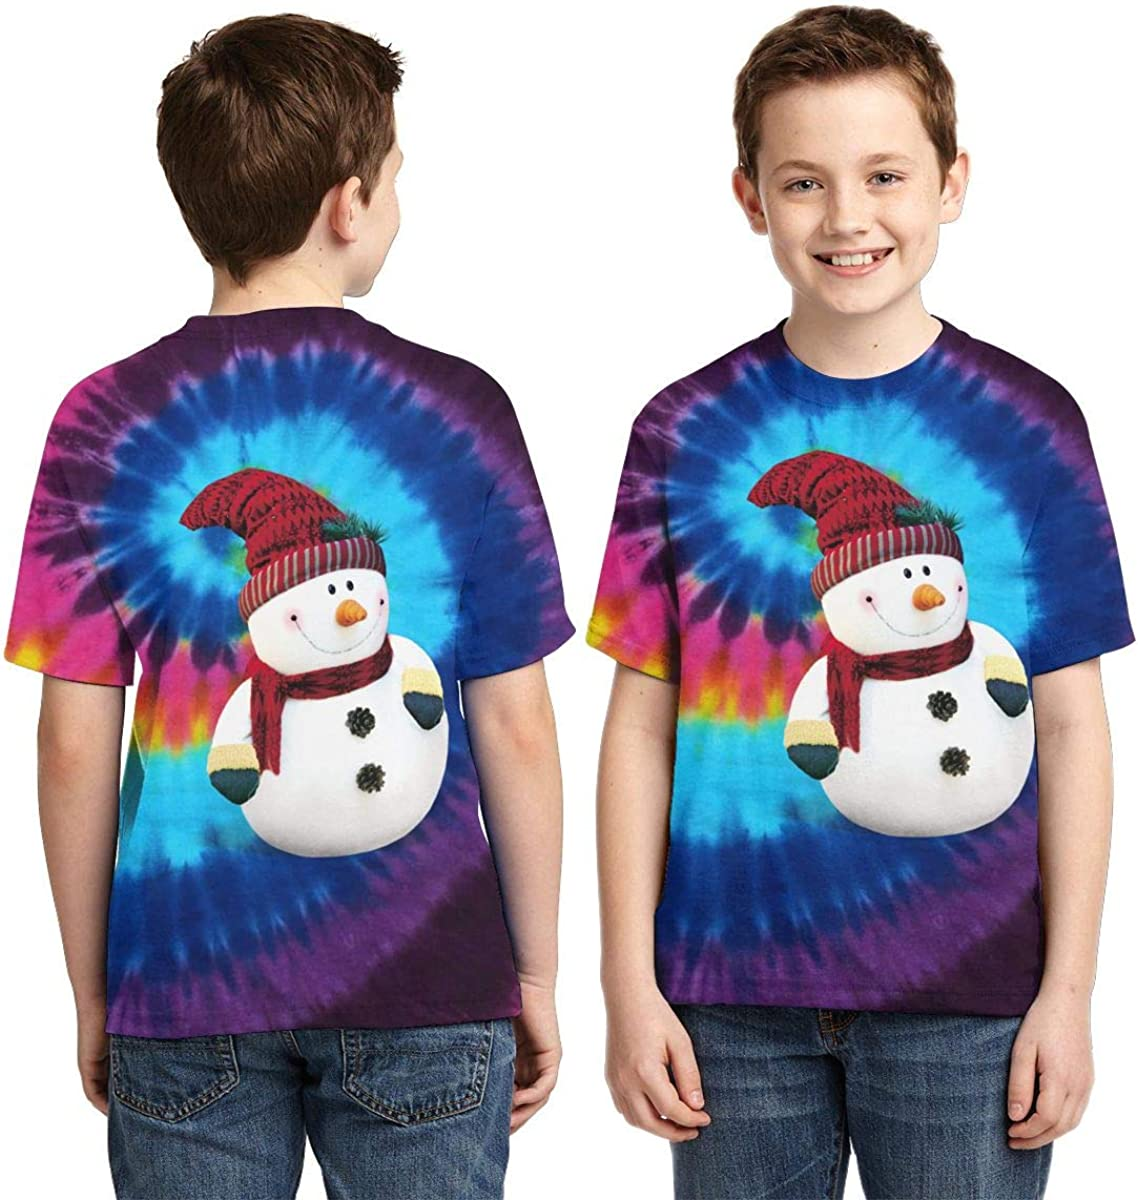 AMODECO Merry Christmas Snowman 3D Printed Tee T-Shirt for Youth Teenager Boys Girls